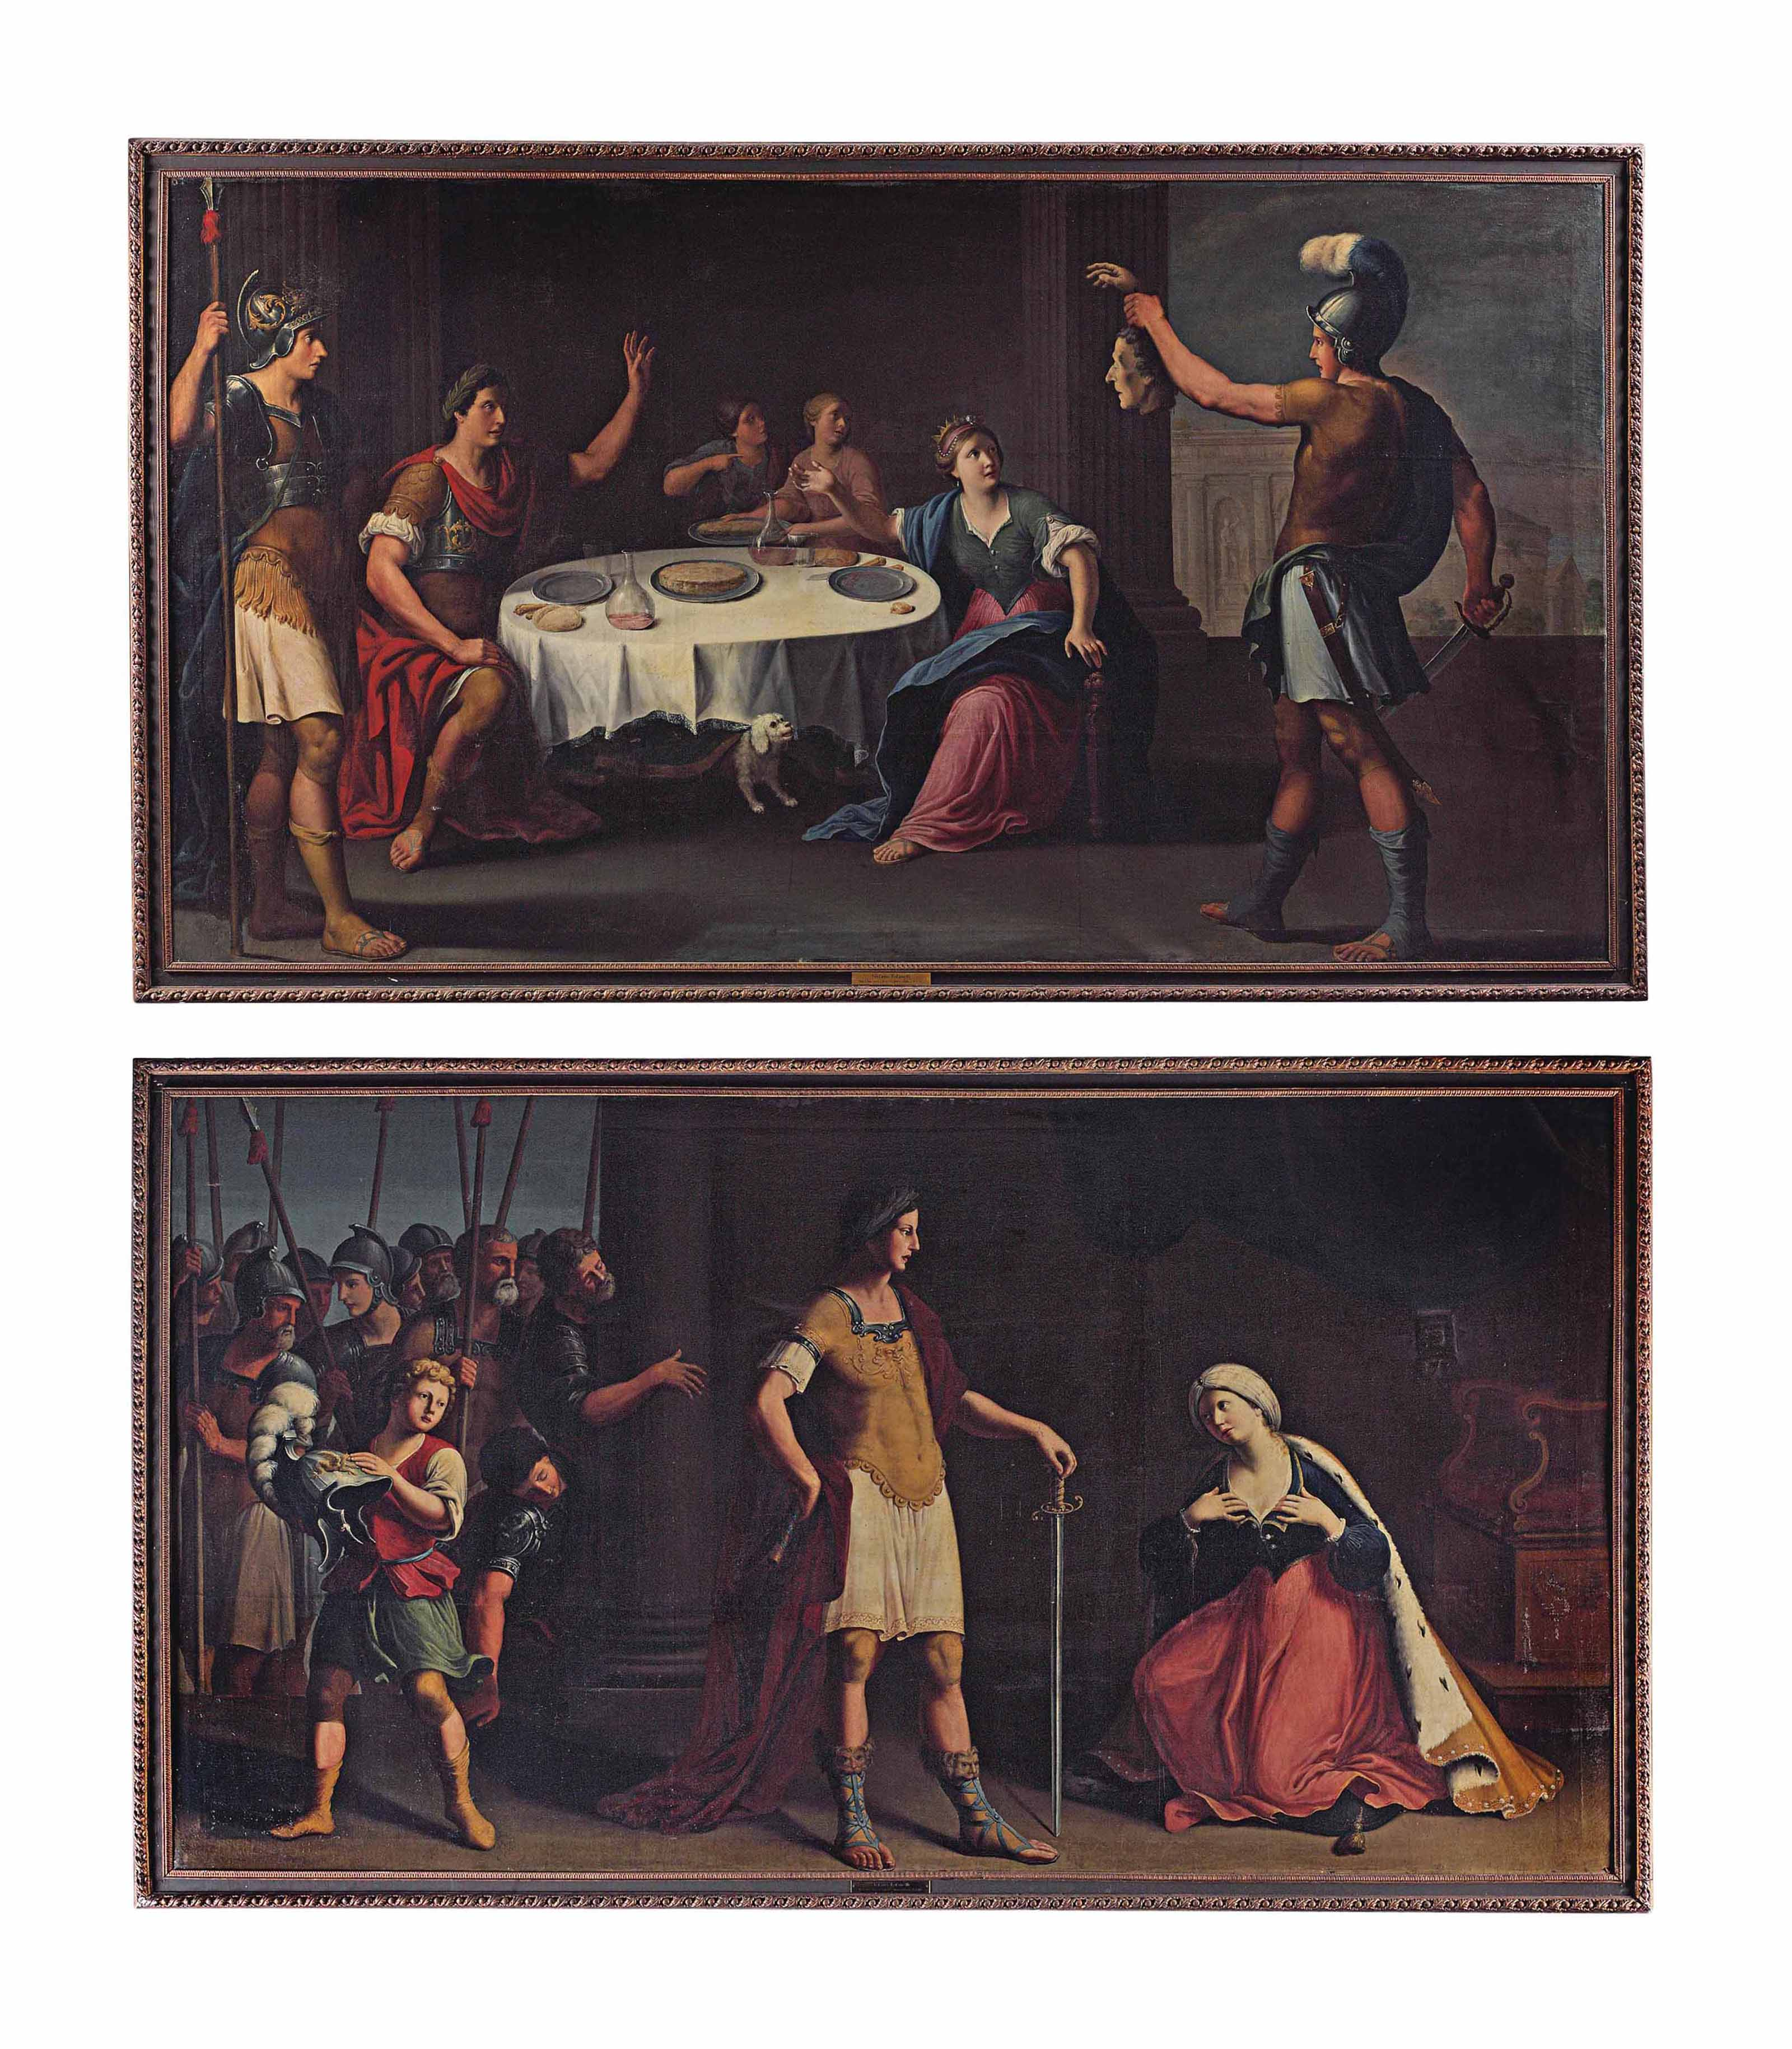 Attributed to Stefano Tofanell